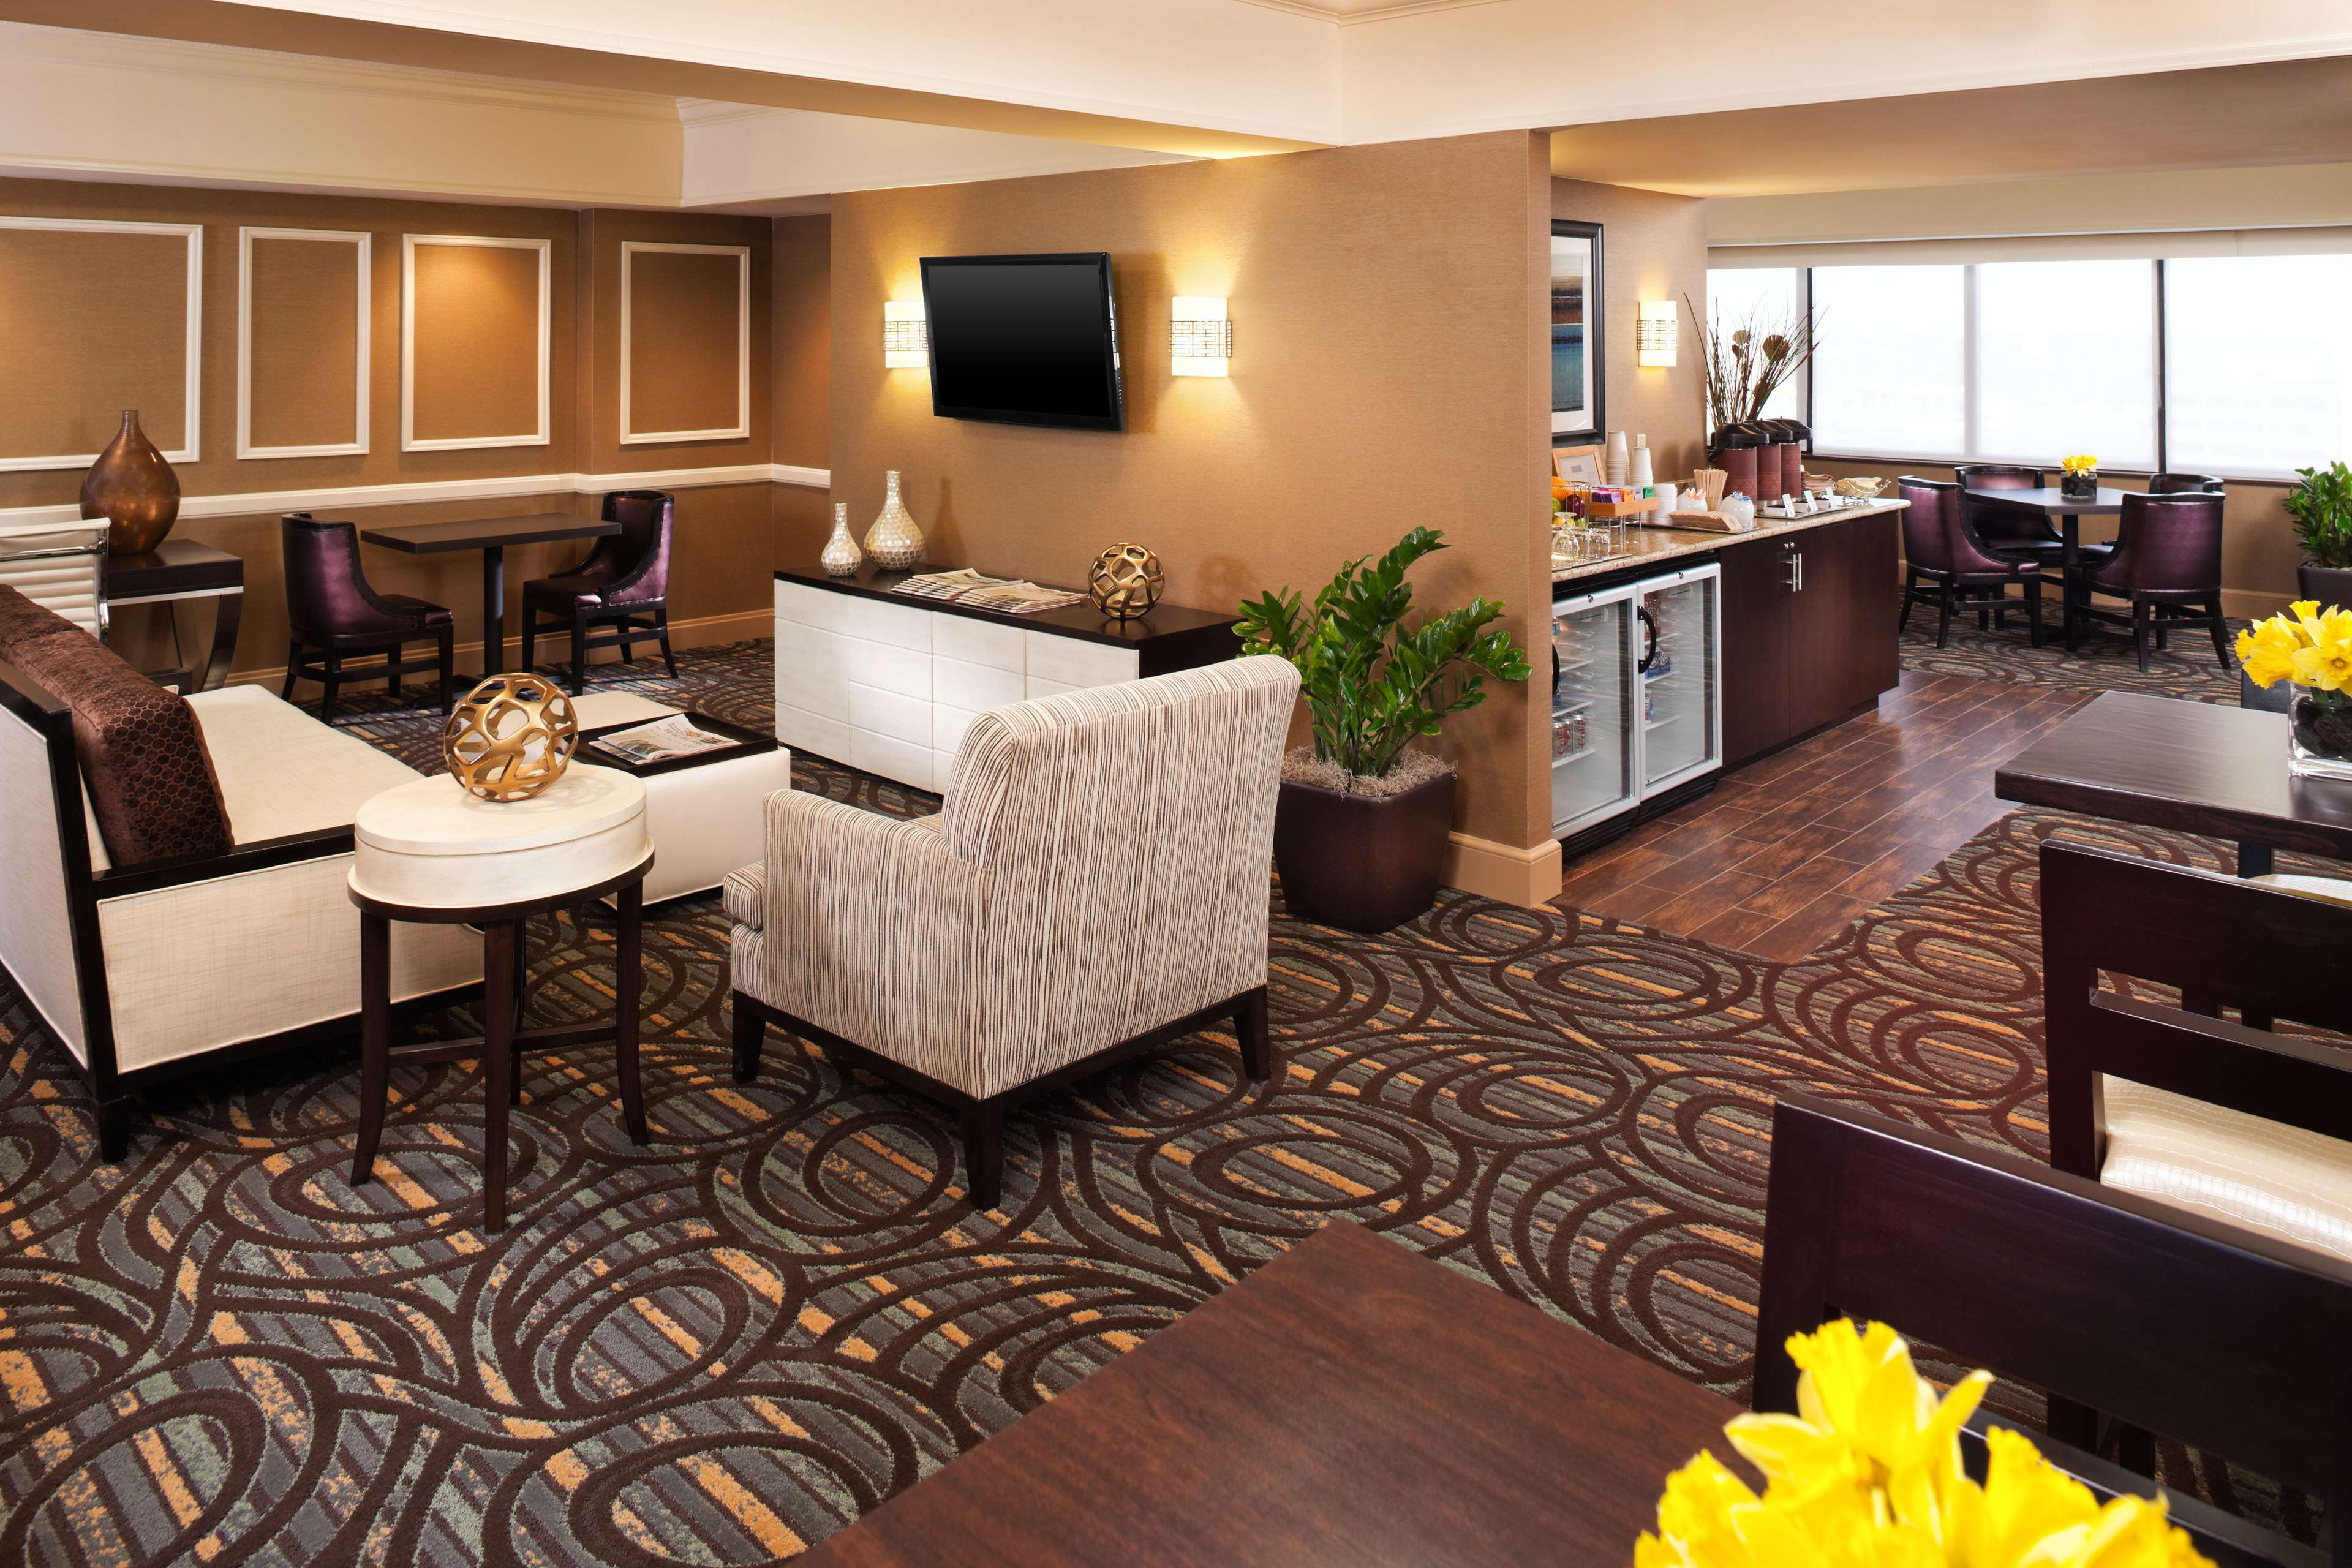 Sheraton Suites Chicago O'Hare image 8